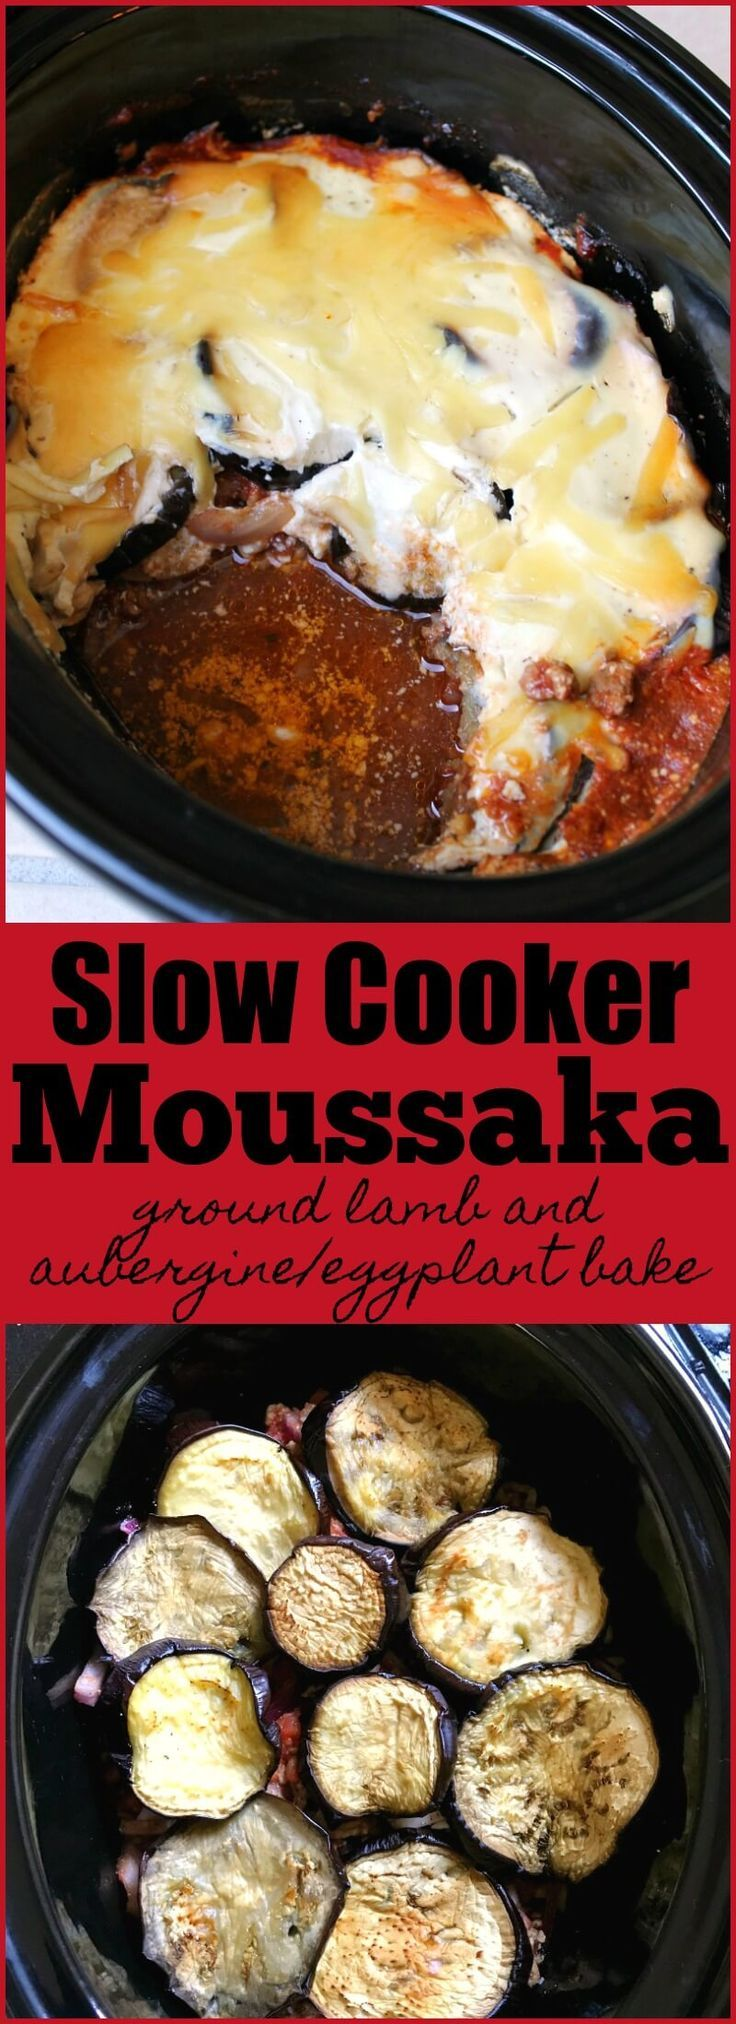 Slow Cooker Moussaka - a Greek dish of ground lamb with aubergine/eggplant and a thick creamy sauce